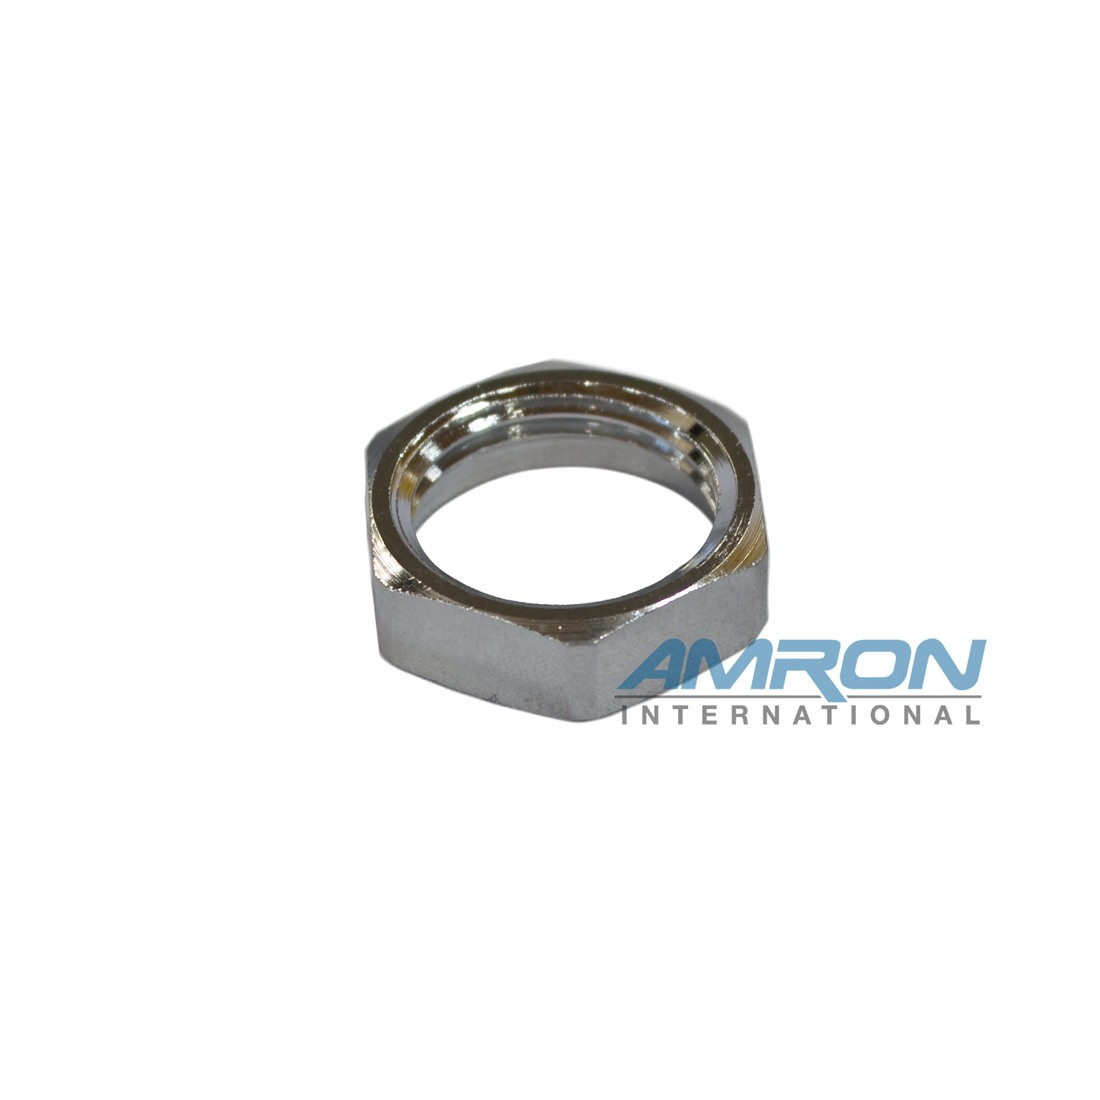 Kirby Morgan 550-050 Jam Nut - (B)